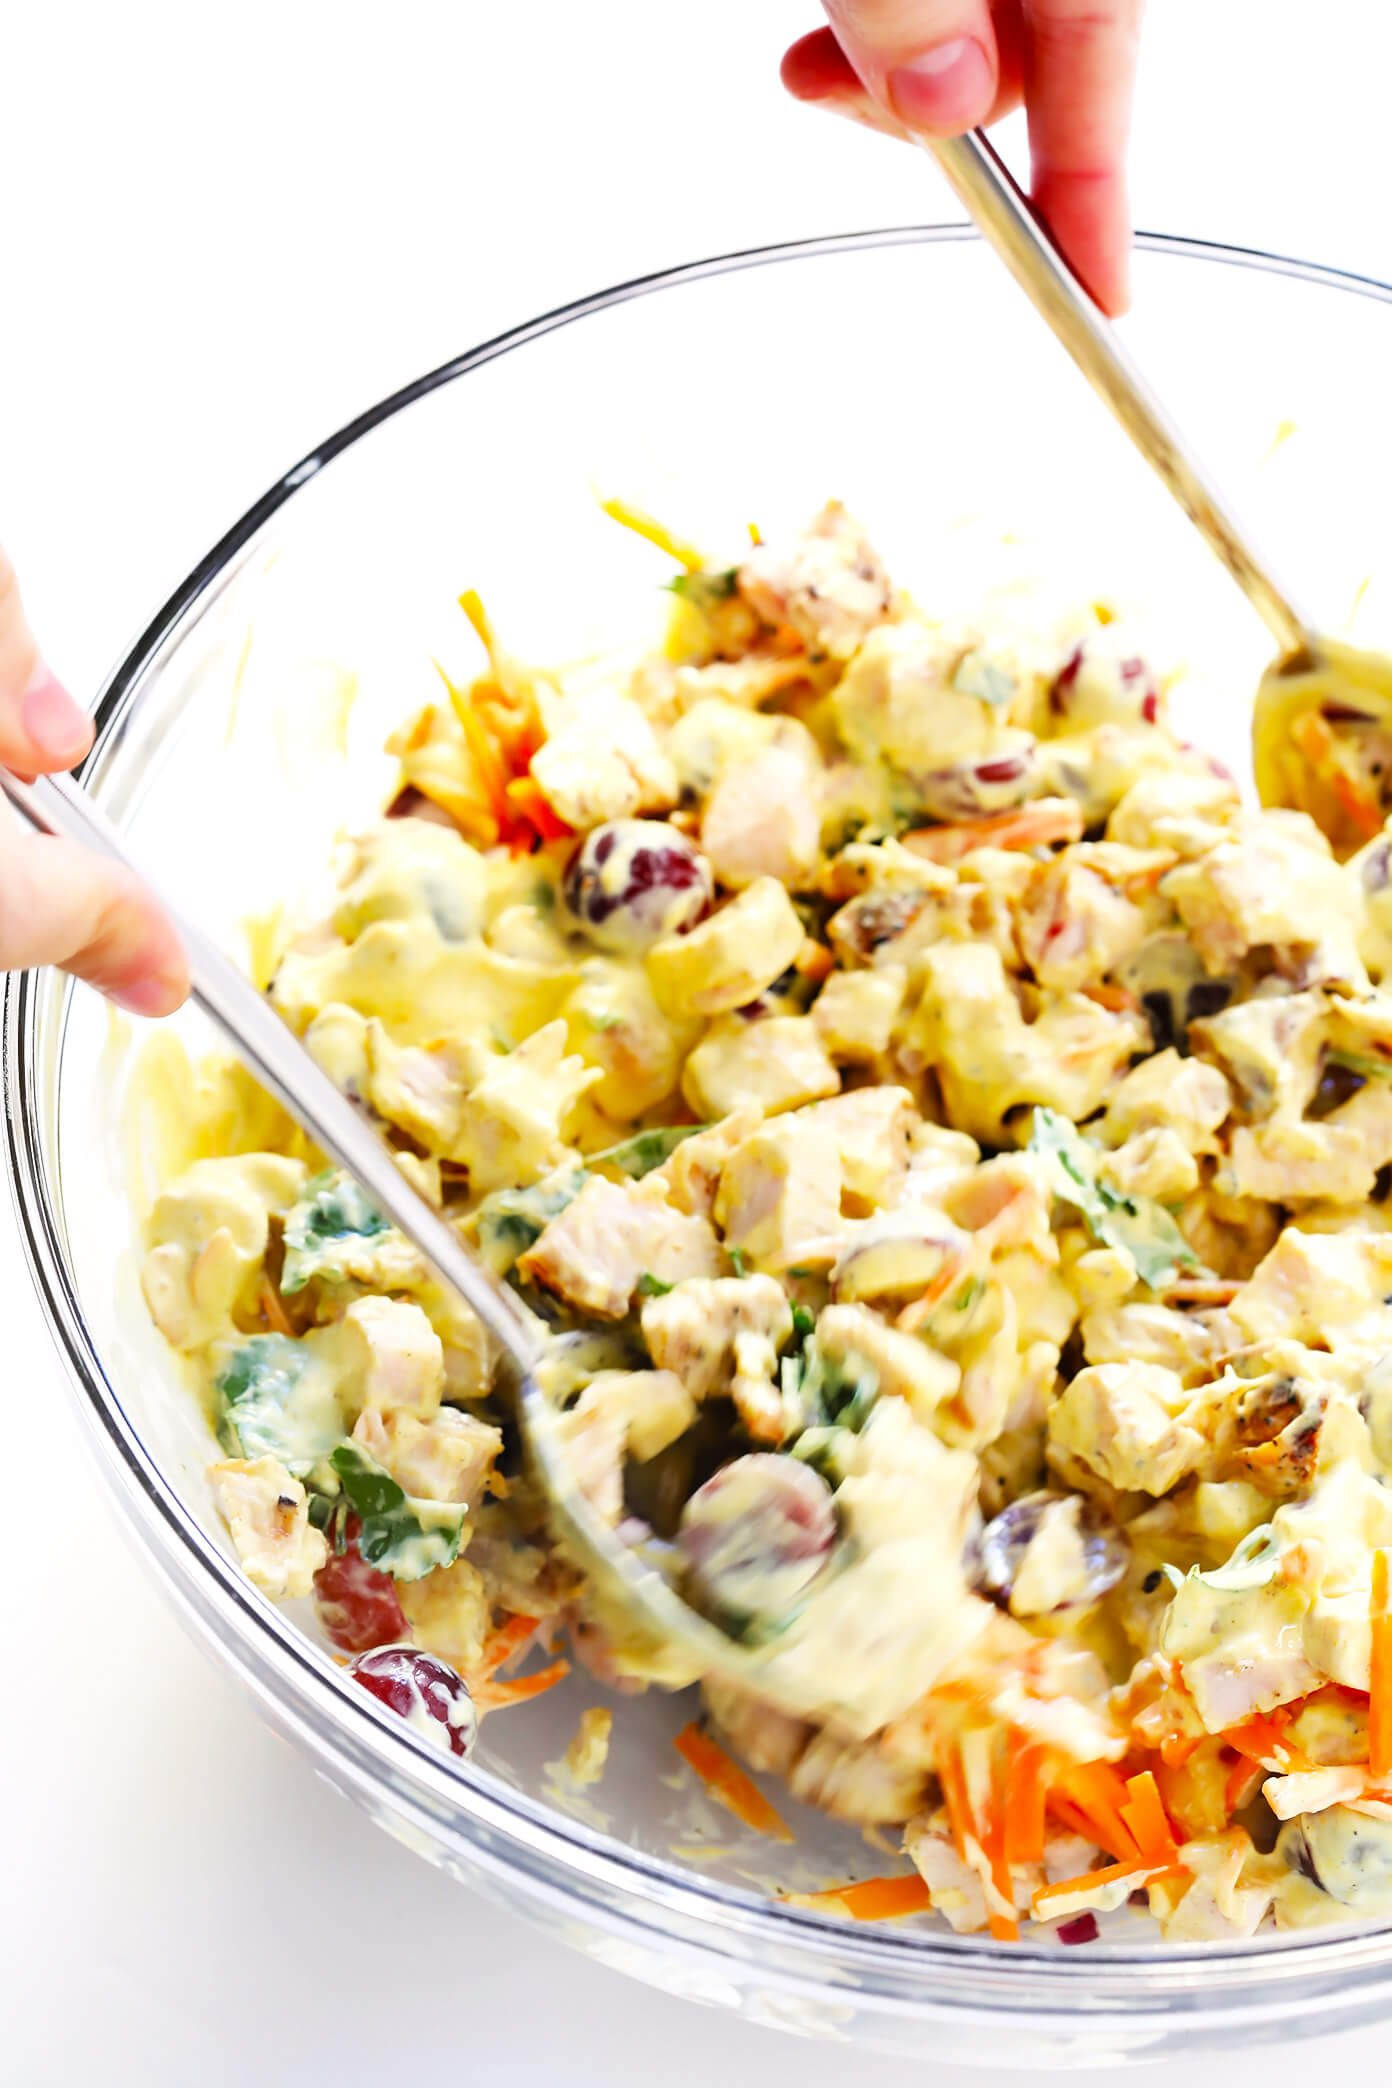 Healthy Curry Chicken Salad Recipe